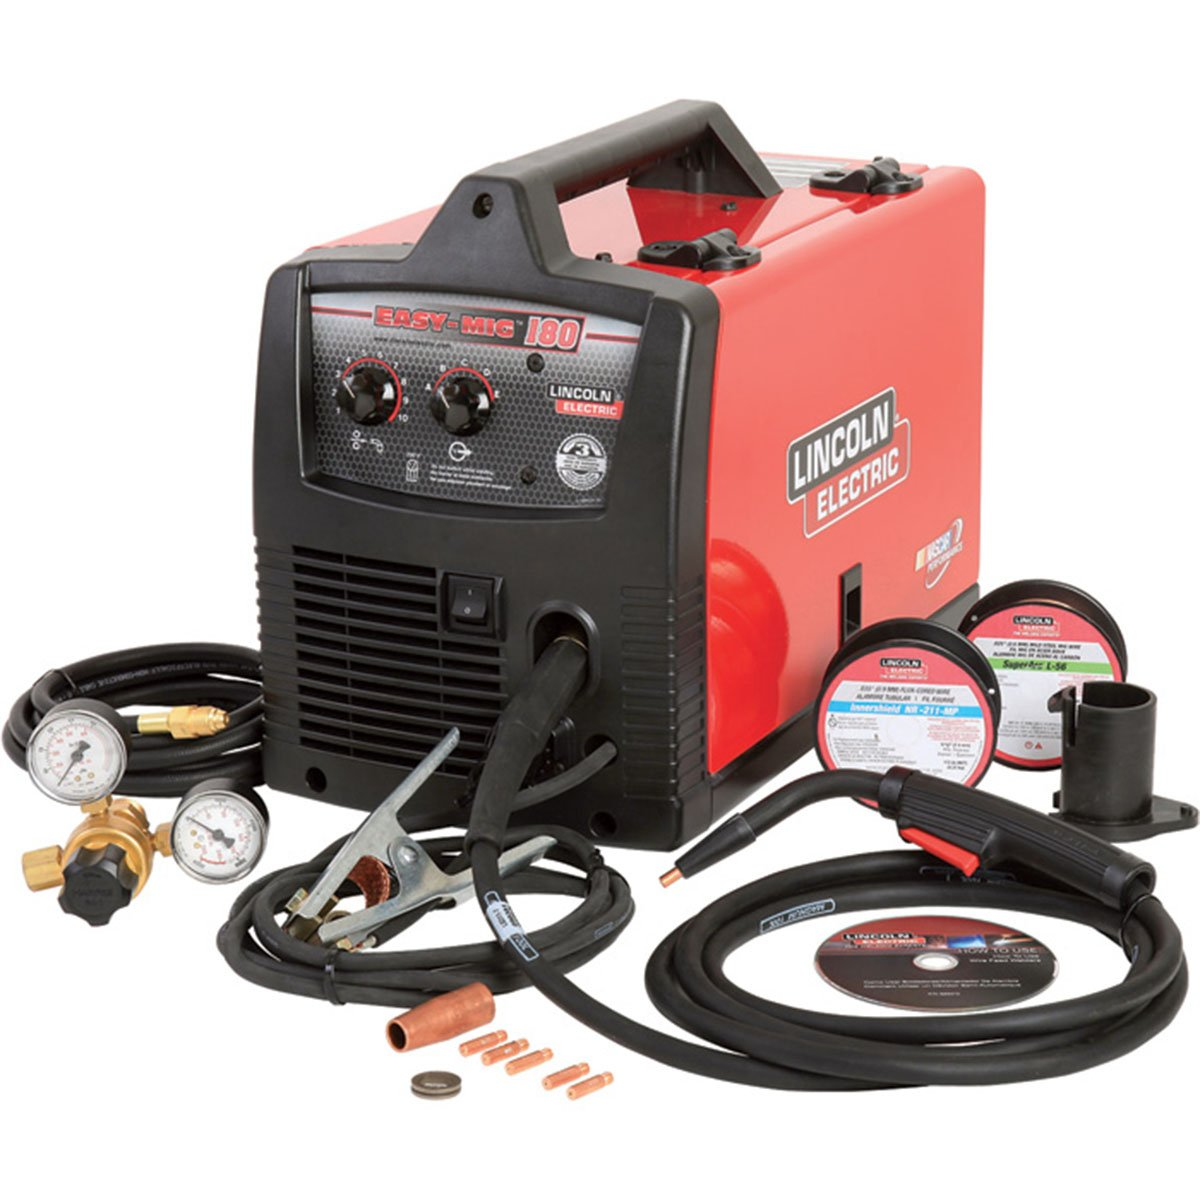 Cheap Lincoln 180 Mig Welder Find Deals On Image 50 Amp Plug Wiring Download Get Quotations Electric Easy Flux Core